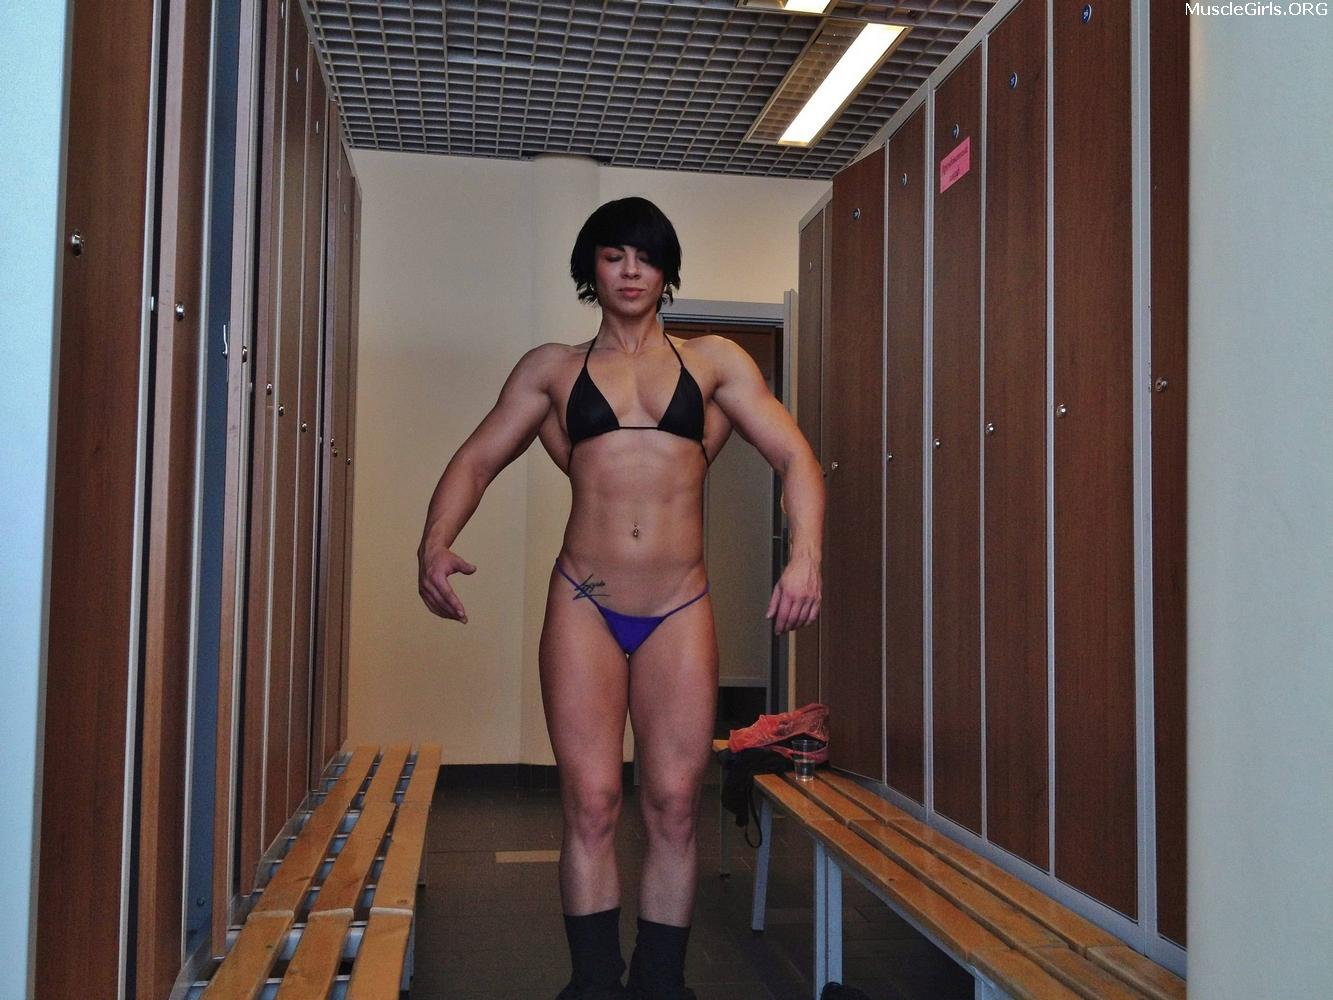 short-hair-muscle-girl-nude7 - Muscle Girls